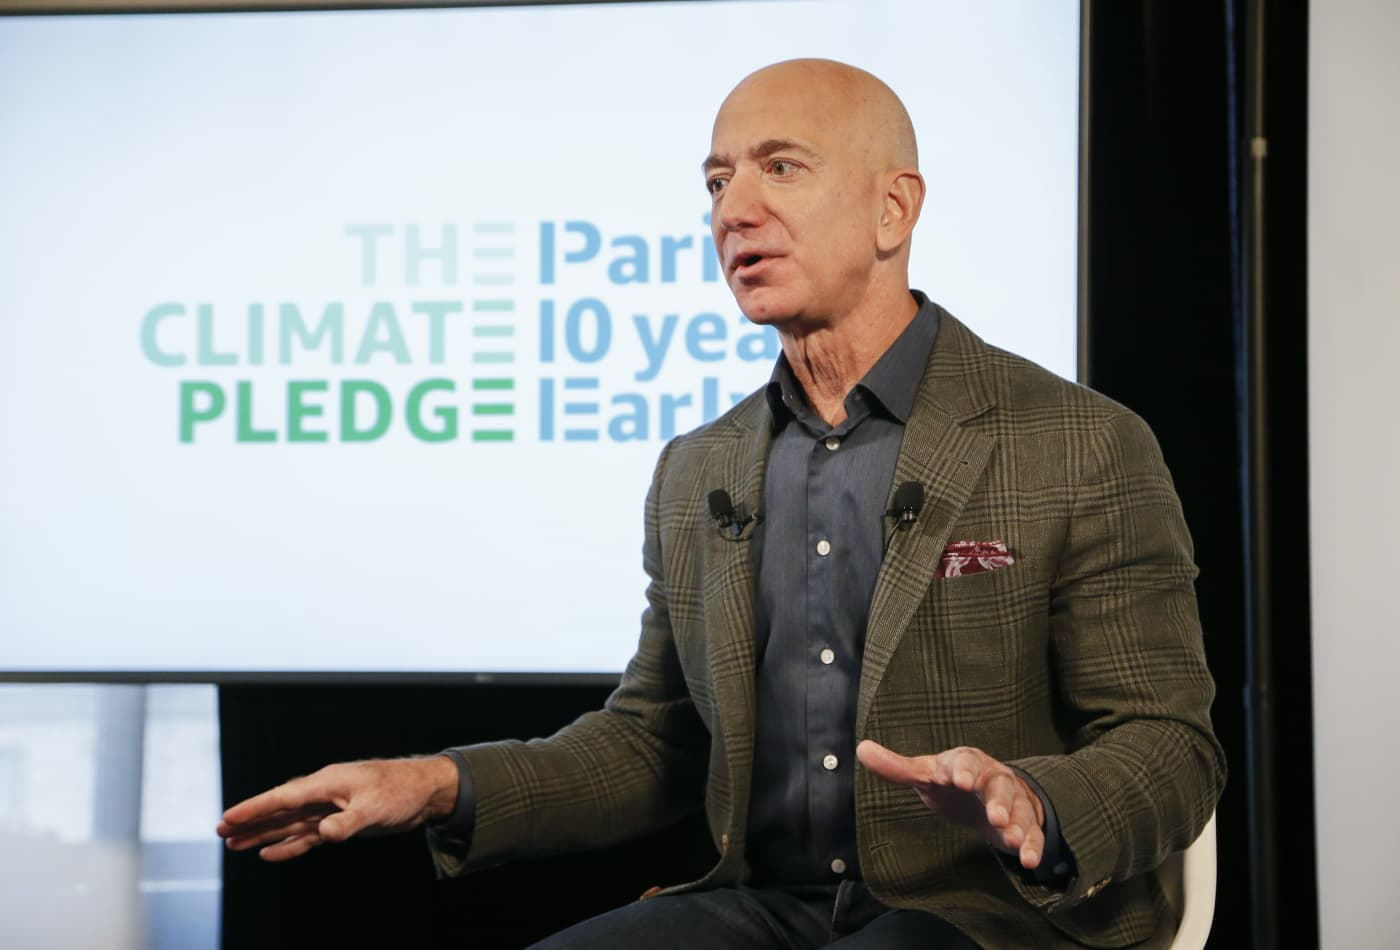 Amazon invests in EV charging start-up and other climate technologies